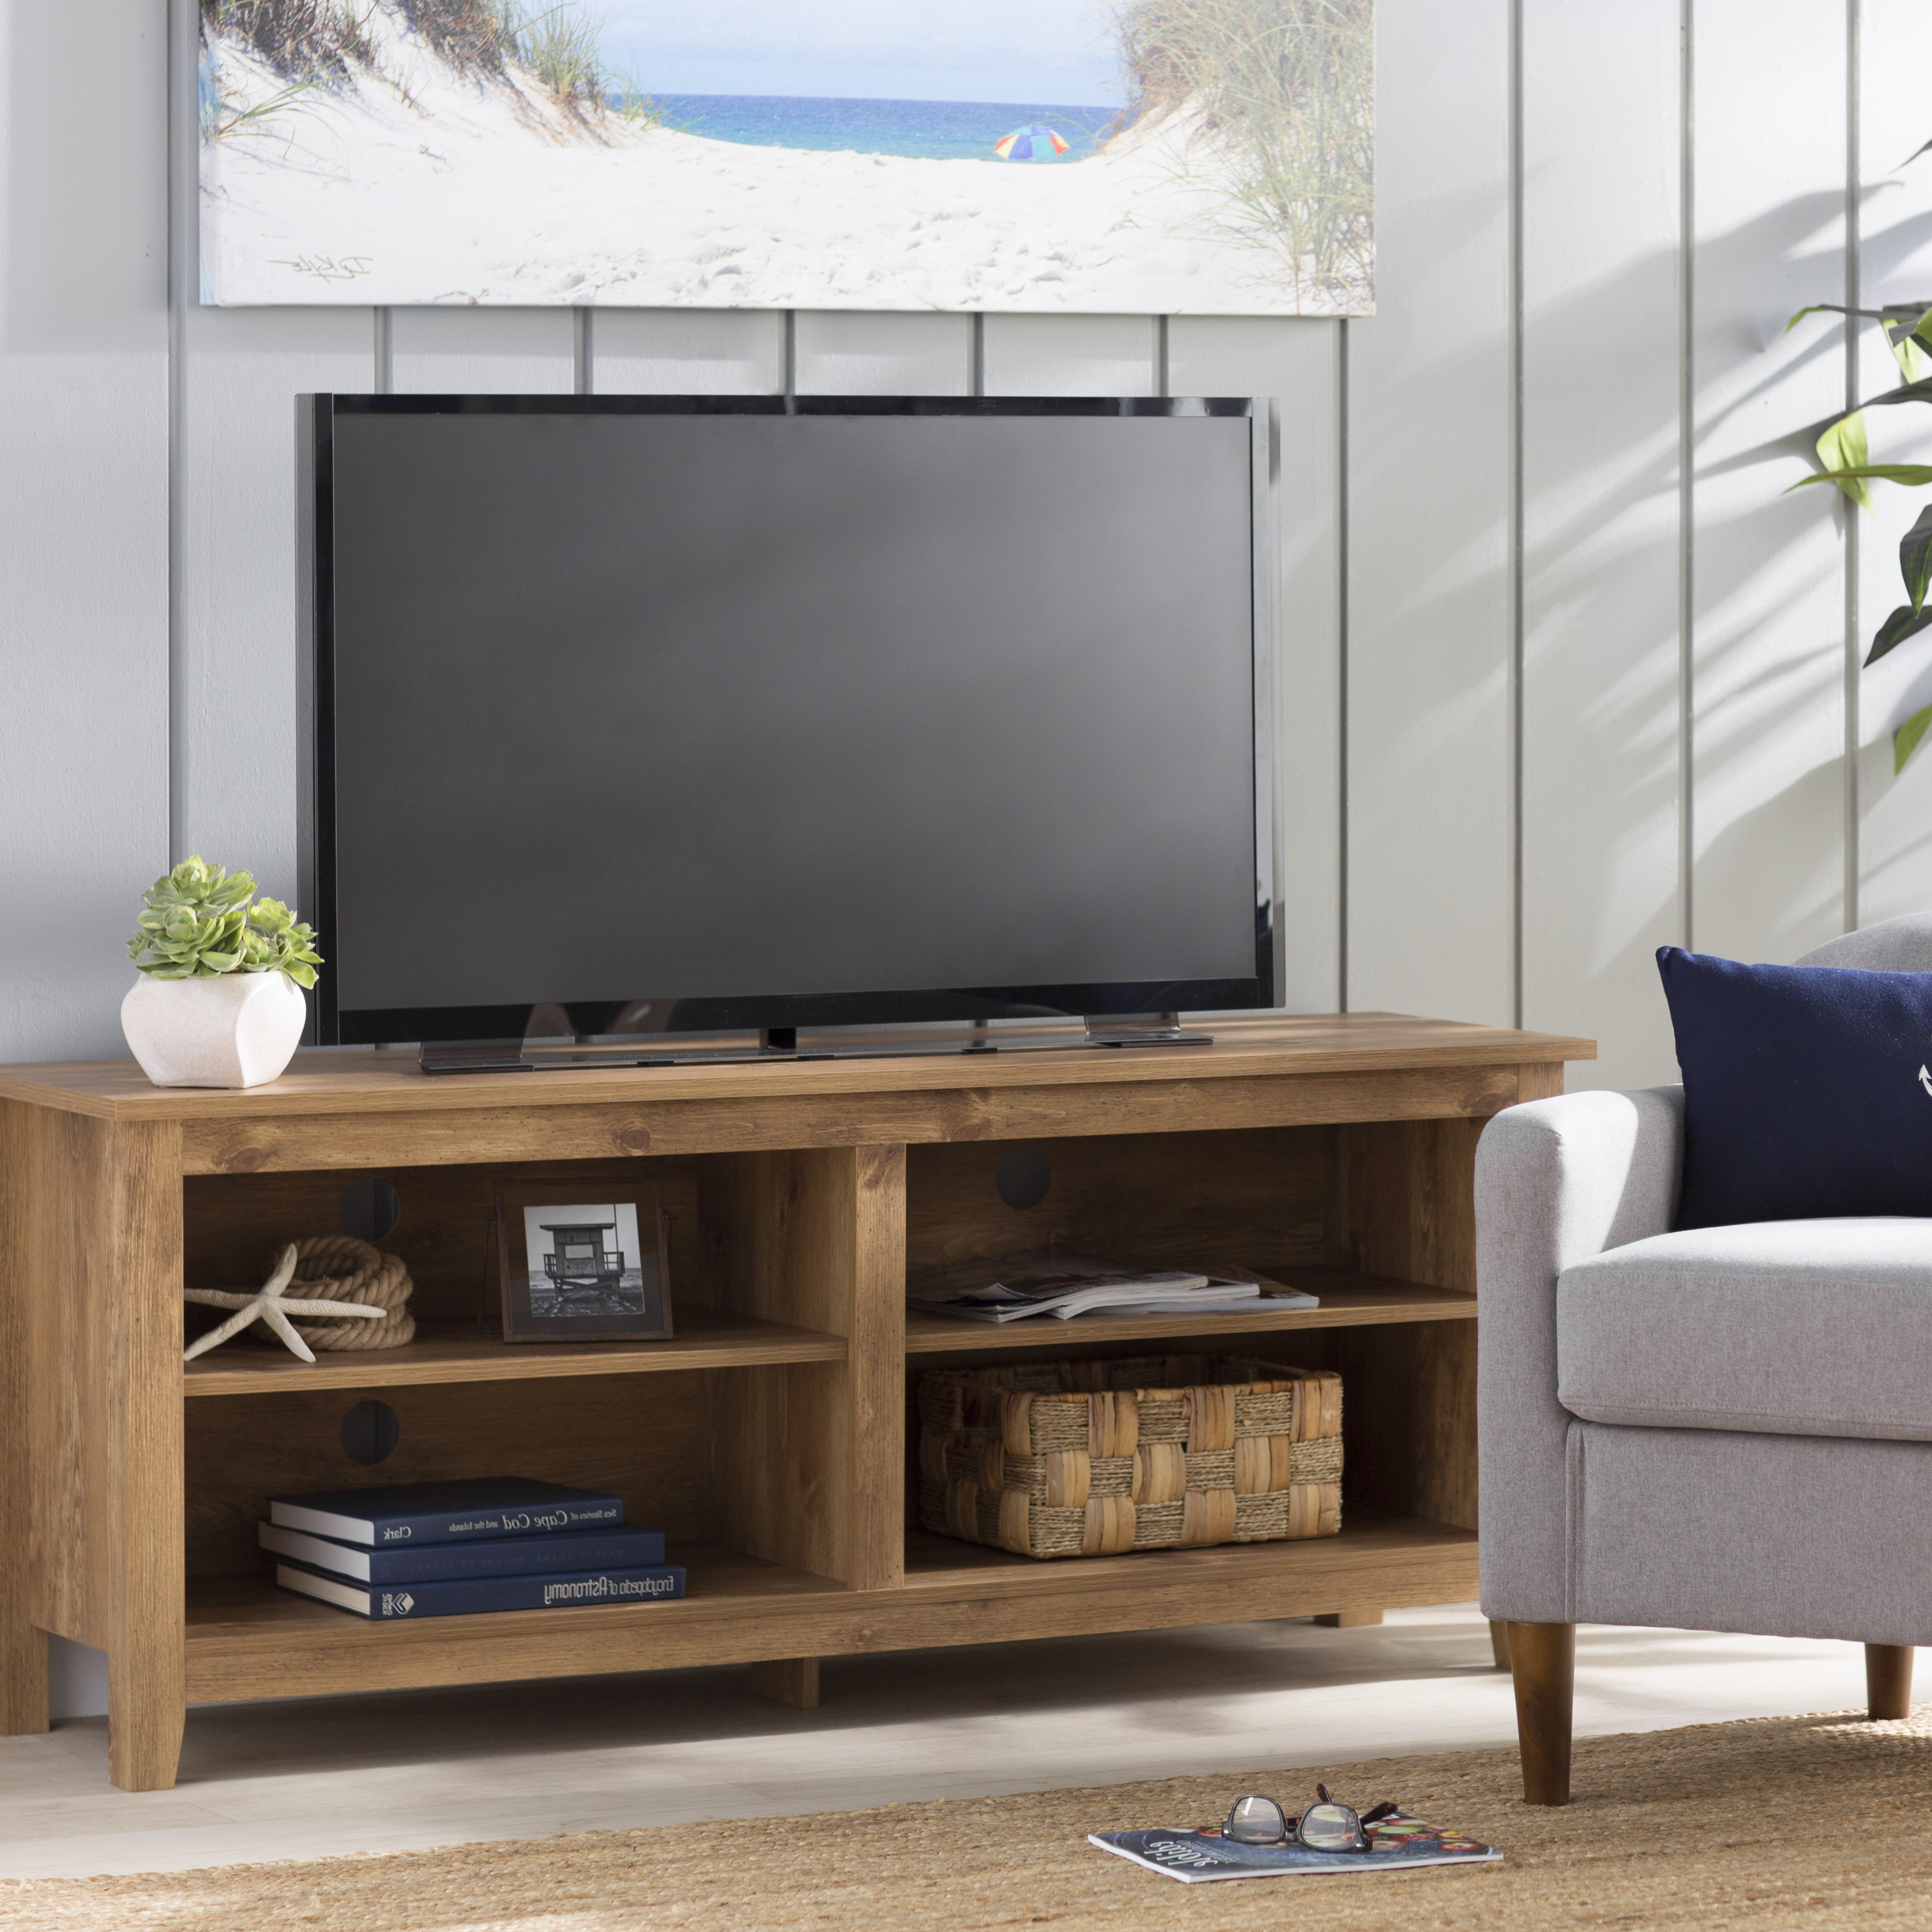 Wayfair Intended For Ducar 64 Inch Tv Stands (Gallery 19 of 20)